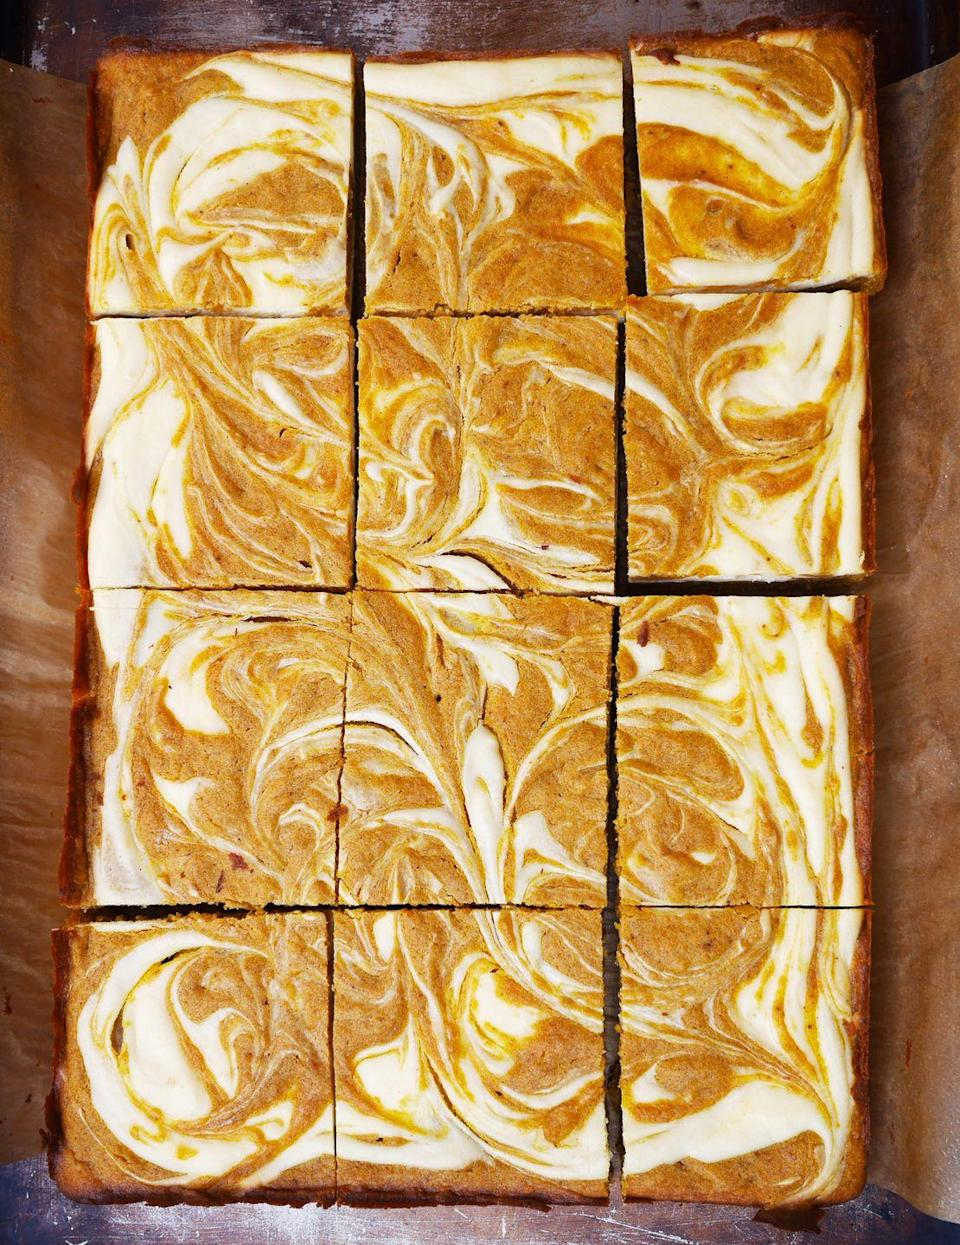 "<p>The pumpkin cheesecake swirls on these blondies are mesmerizing.</p><p>Get the recipe from <a href=""https://www.delish.com/cooking/recipe-ideas/recipes/a48964/pumpkin-spice-blondies-with-cheesecake-swirl-recipe/"" rel=""nofollow noopener"" target=""_blank"" data-ylk=""slk:Delish"" class=""link rapid-noclick-resp"">Delish</a>.</p>"